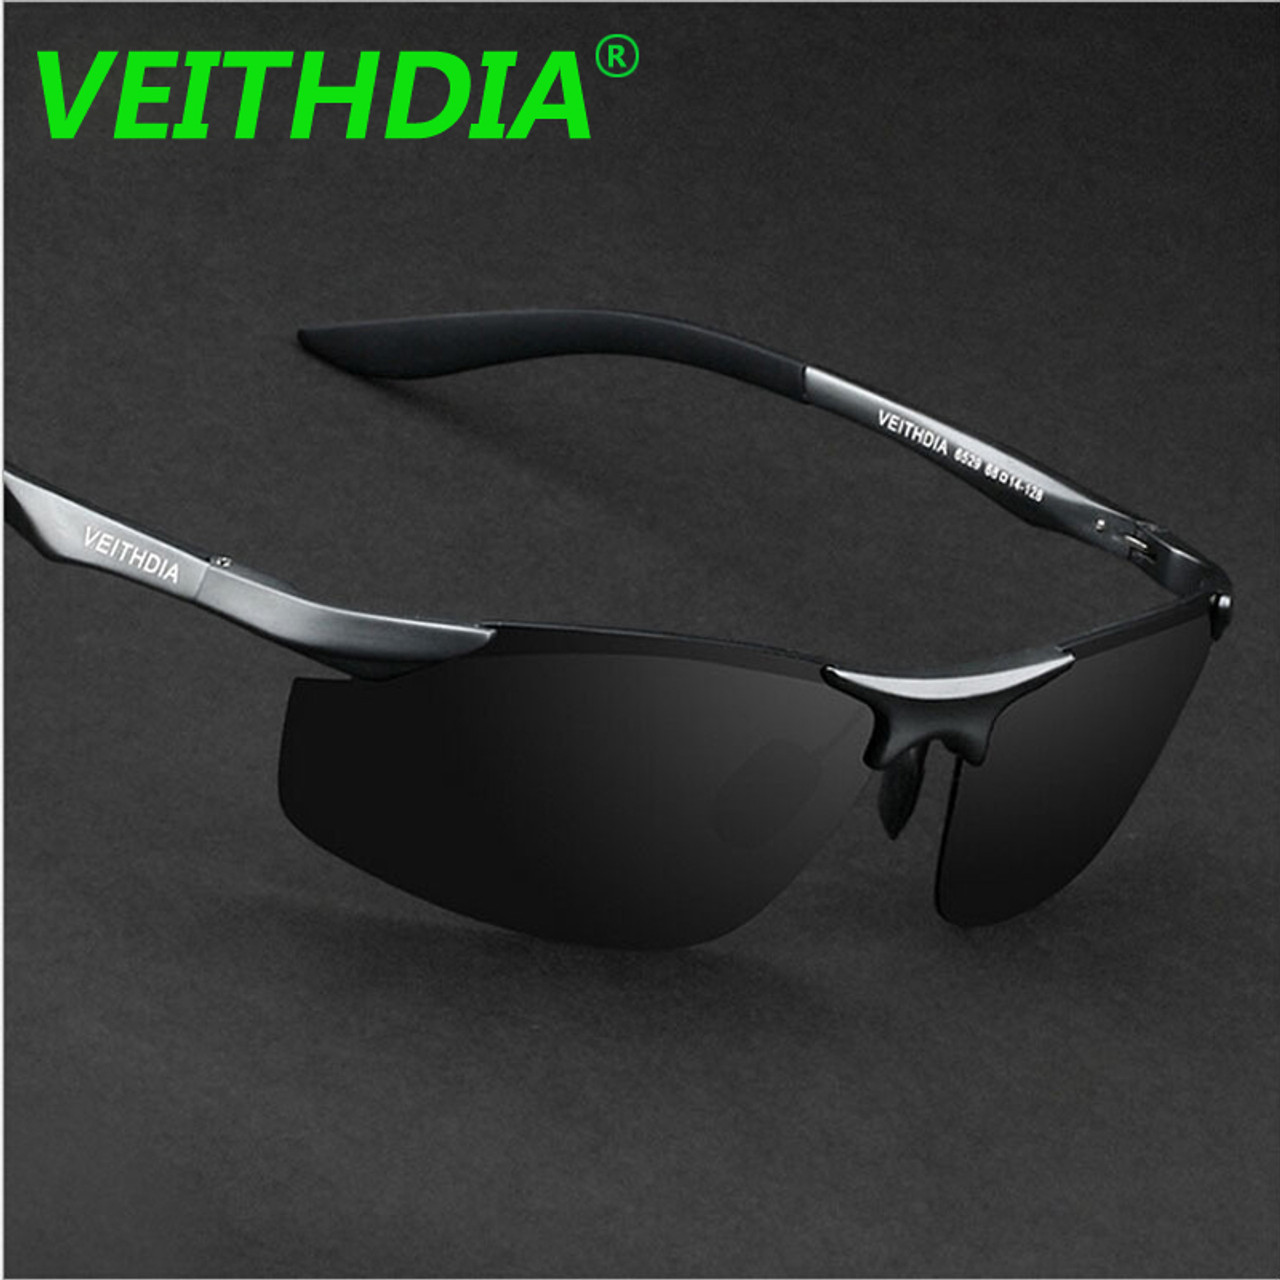 4c7848a11b ... VEITHDIA Aluminum Magnesium Brand Designer Polarized Sunglasses Men Glasses  Driving Glasses Summer 2017 Eyewear Accessories 6529 ...